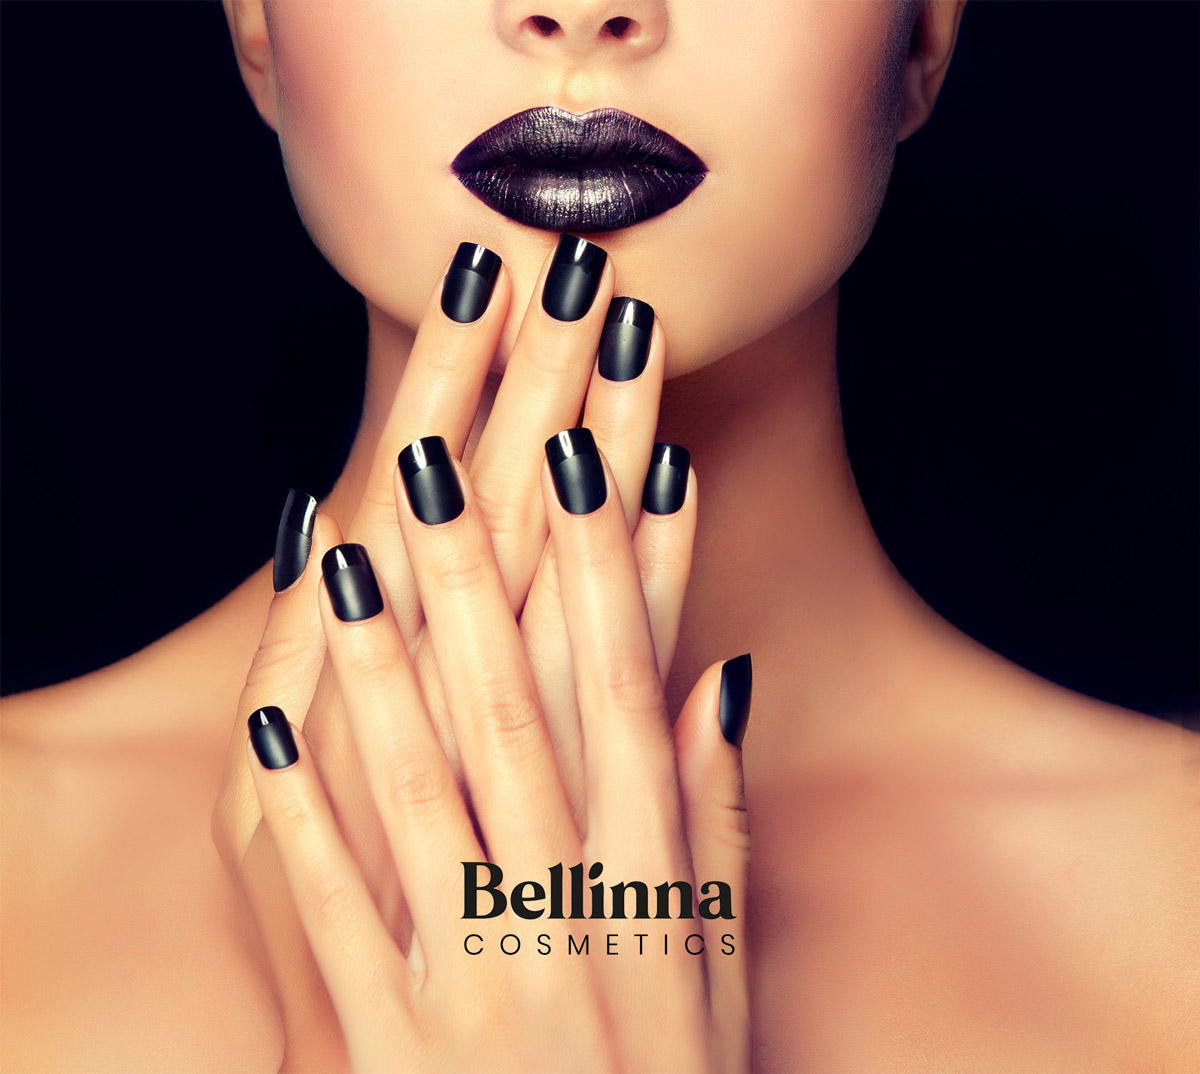 Bellinna Cosmetics Nails